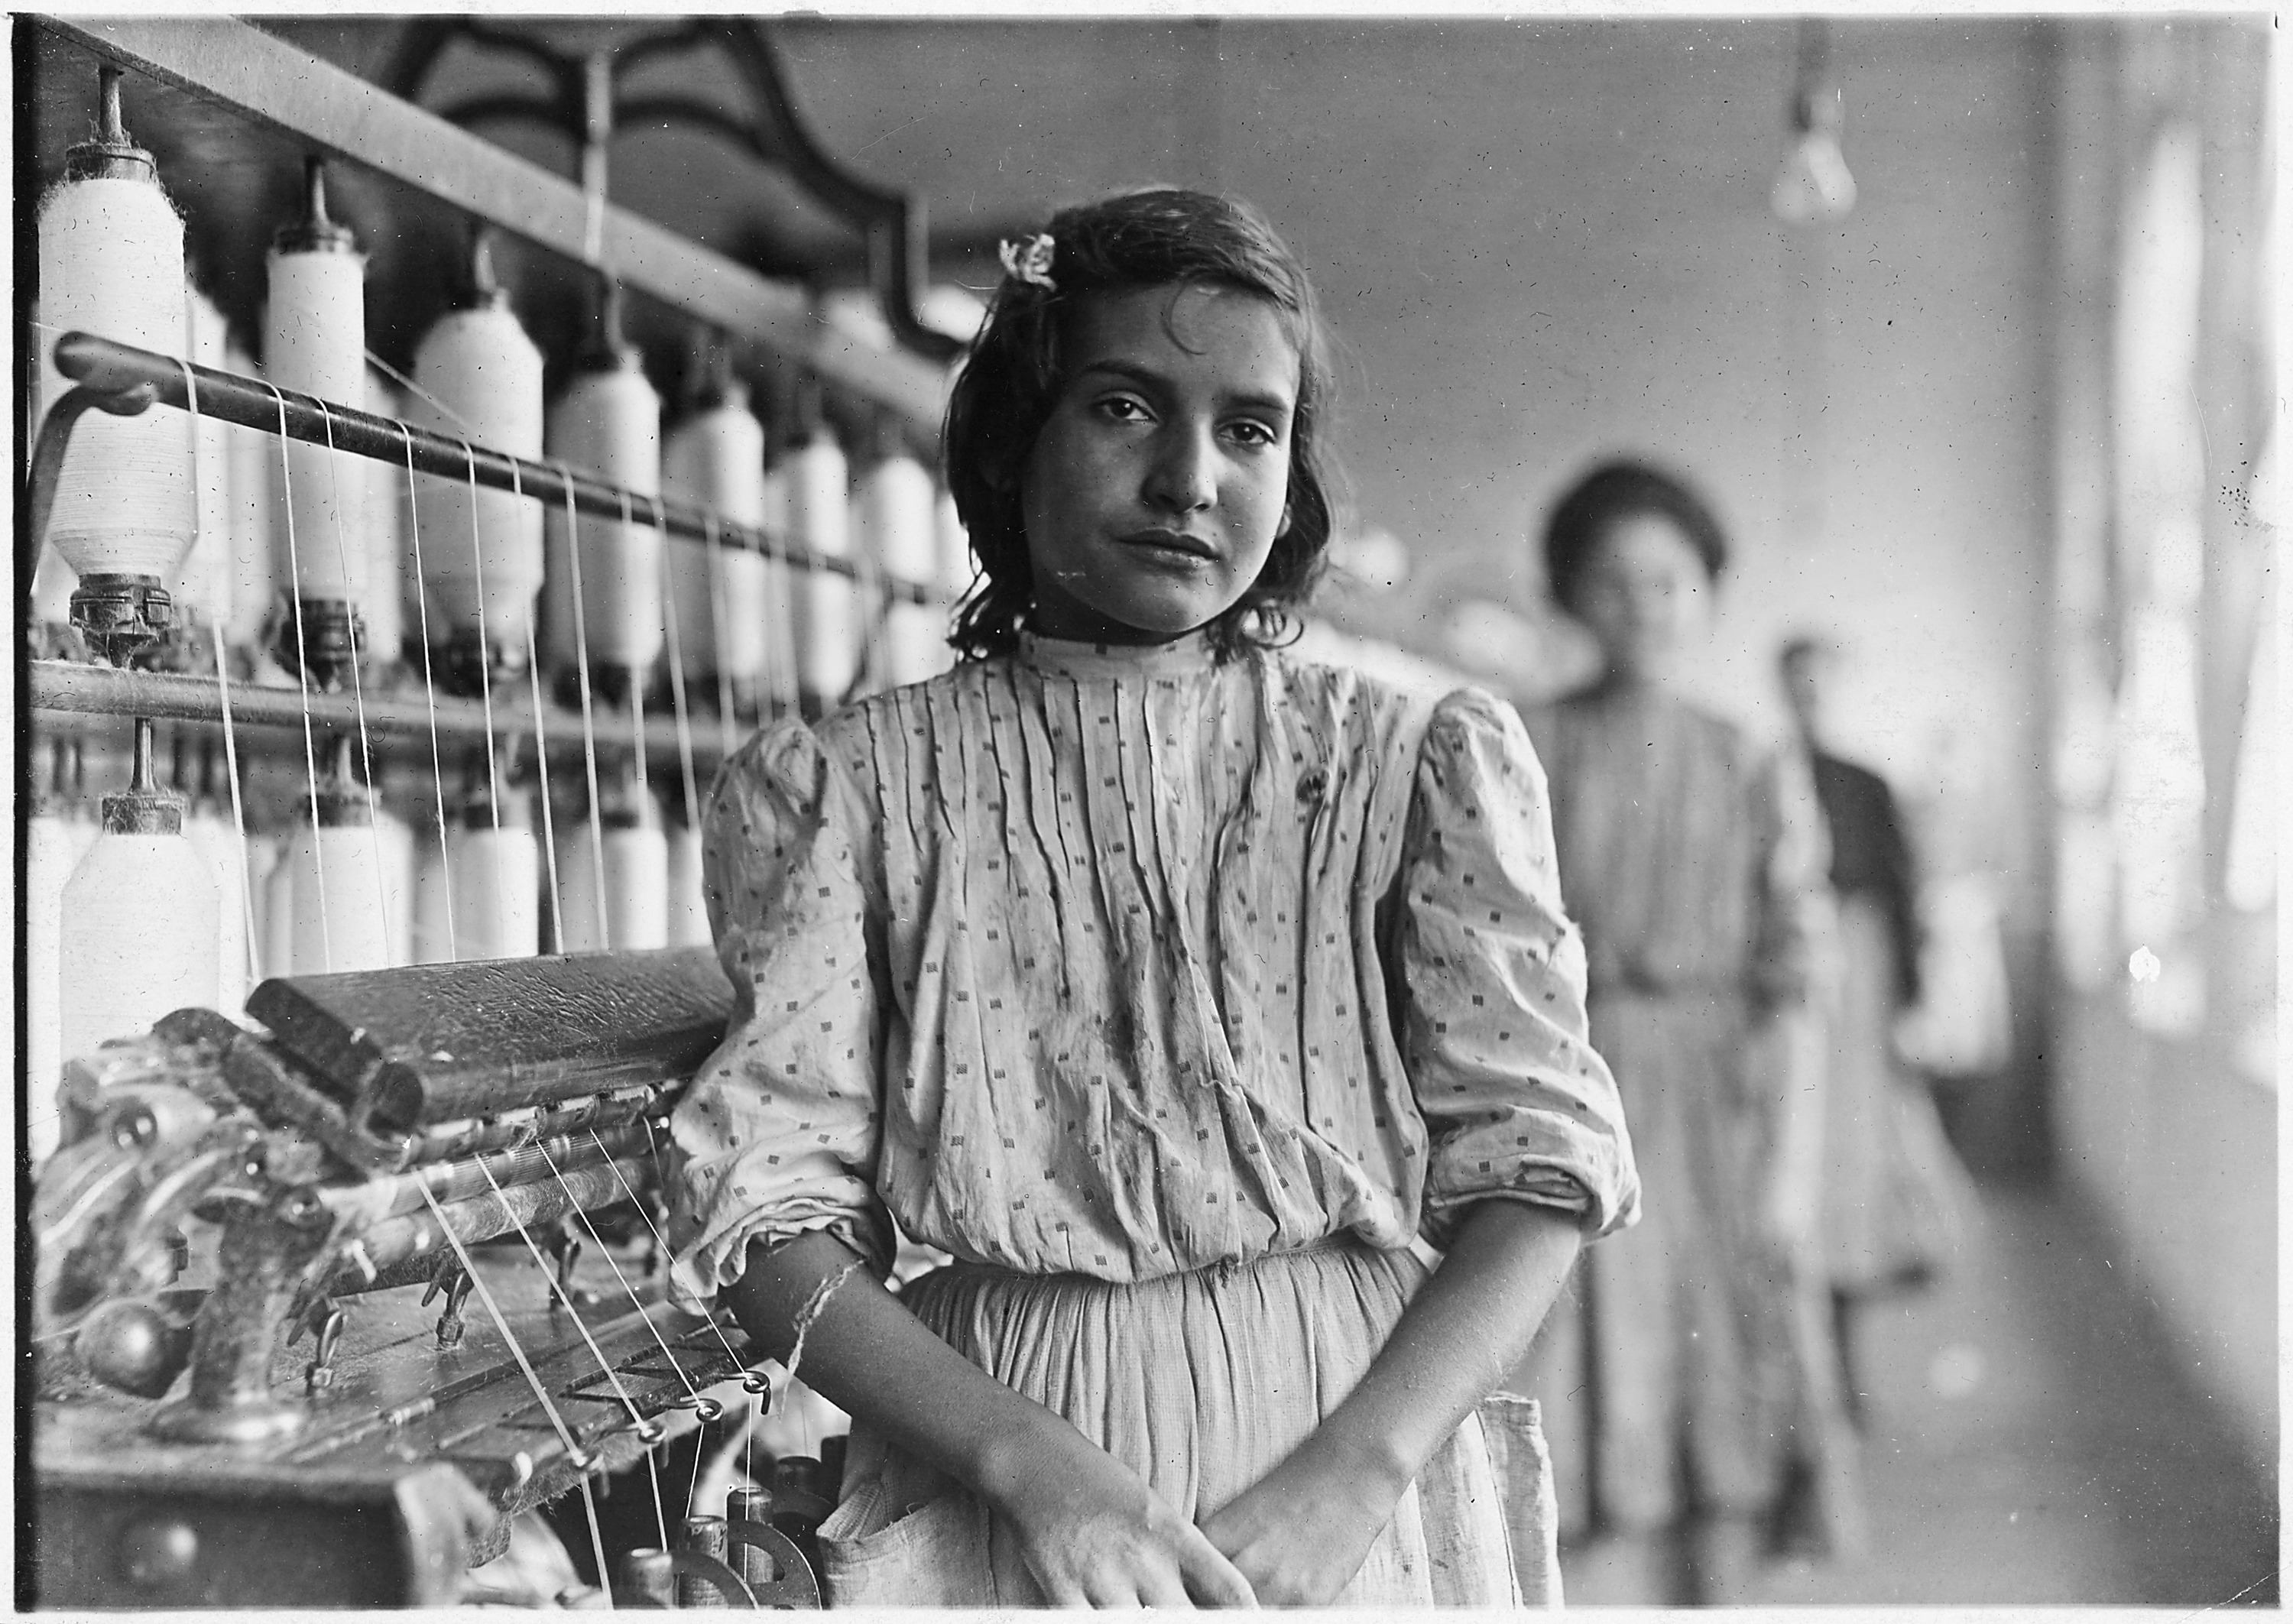 A typical spinner, Mamie . Lancaster Cotton Mills. Lancaster, S.C. - NARA - 523123